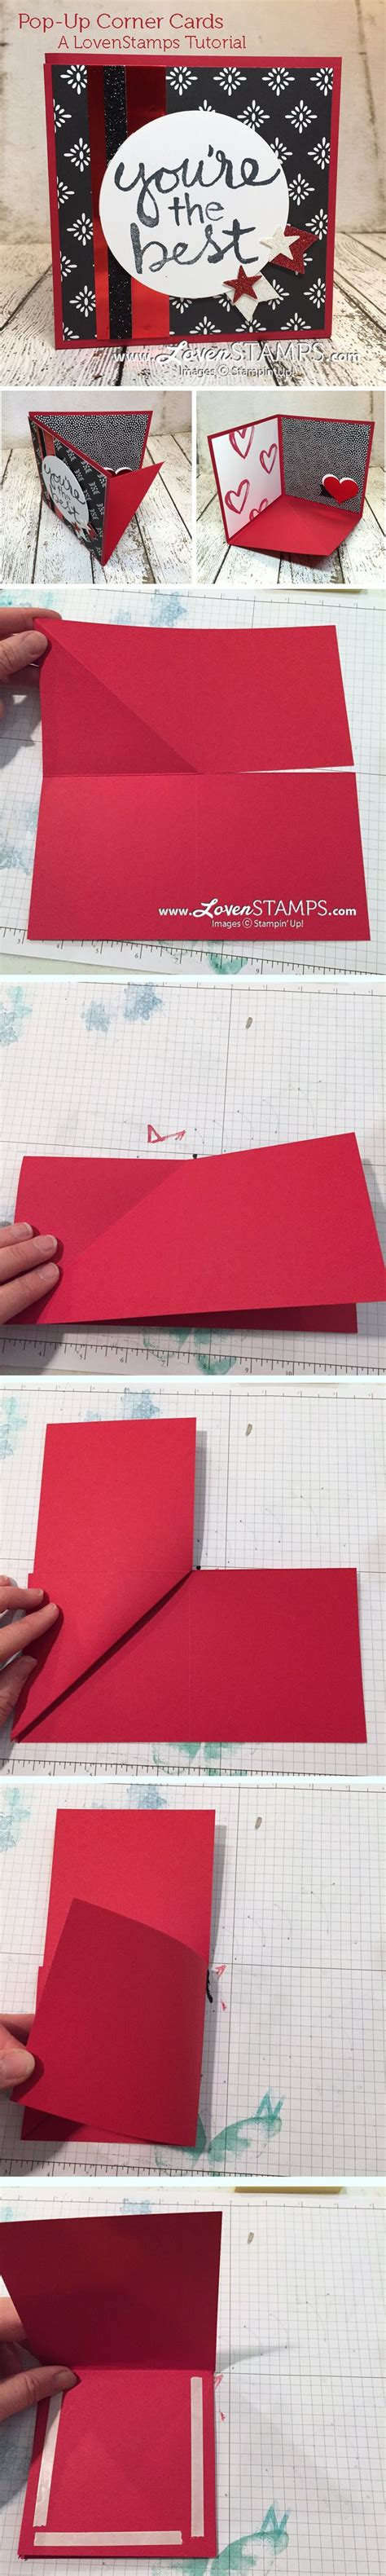 tutorial carding mailer 17 images about greeting cards on pinterest masculine